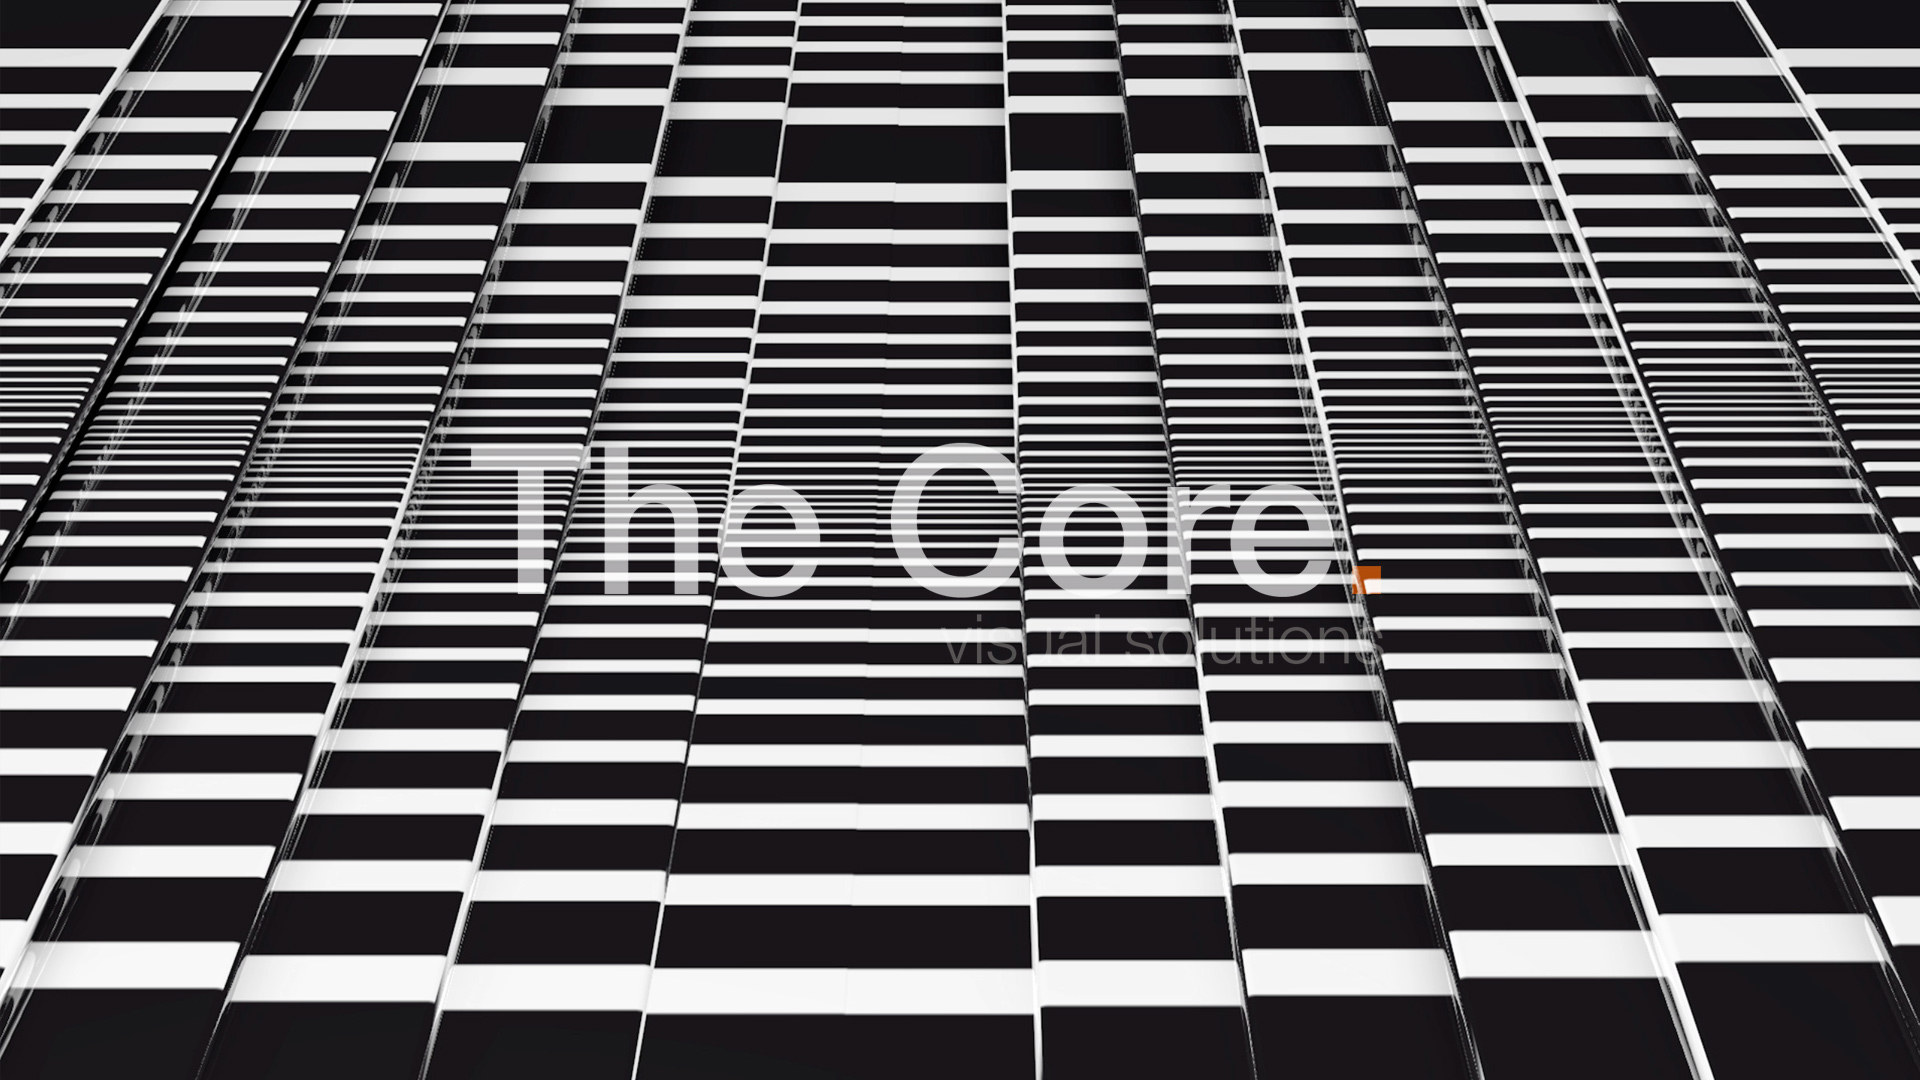 00212-SLICE-OPART-8-STILL-by-The-Core